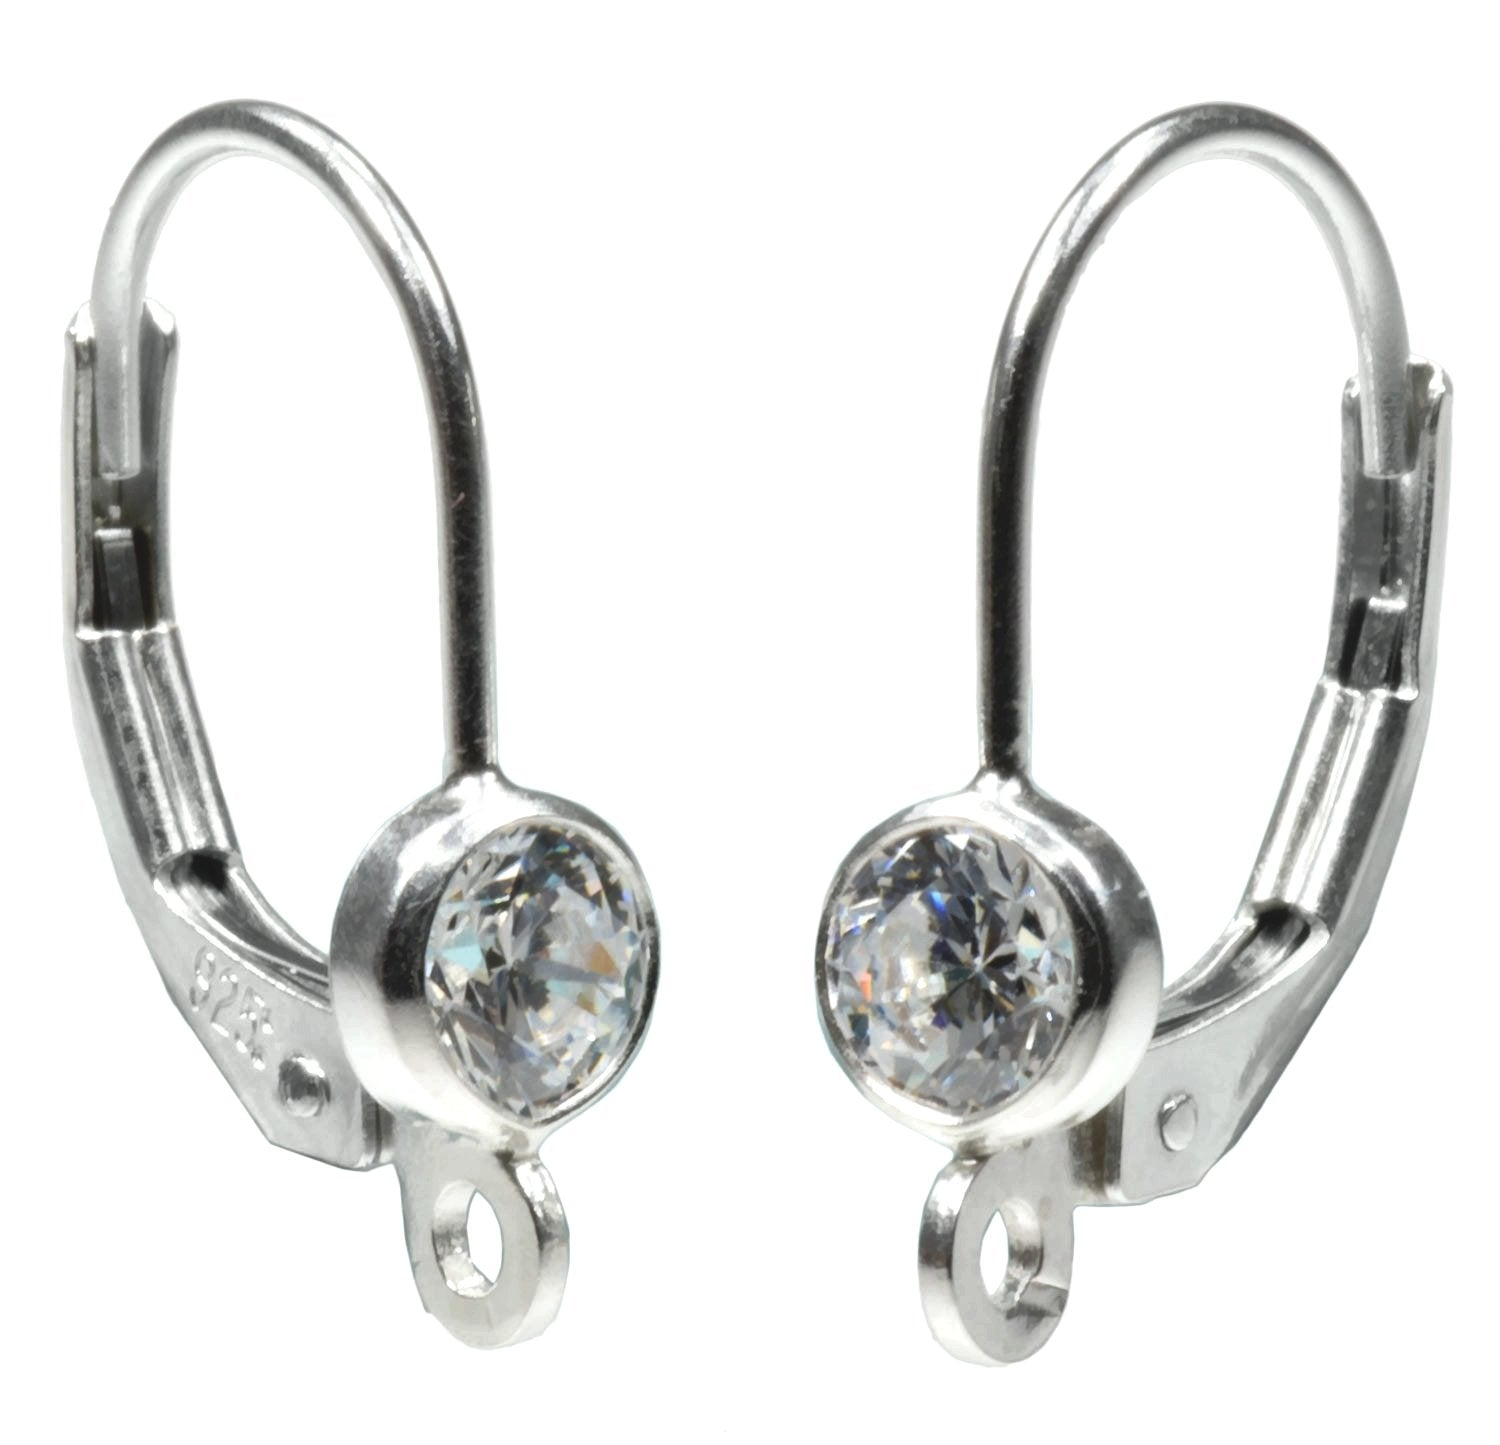 1779f68a9 Sterling Silver 4mm CZ's Lever Back Earring Parts with Ring 1-Pair ...